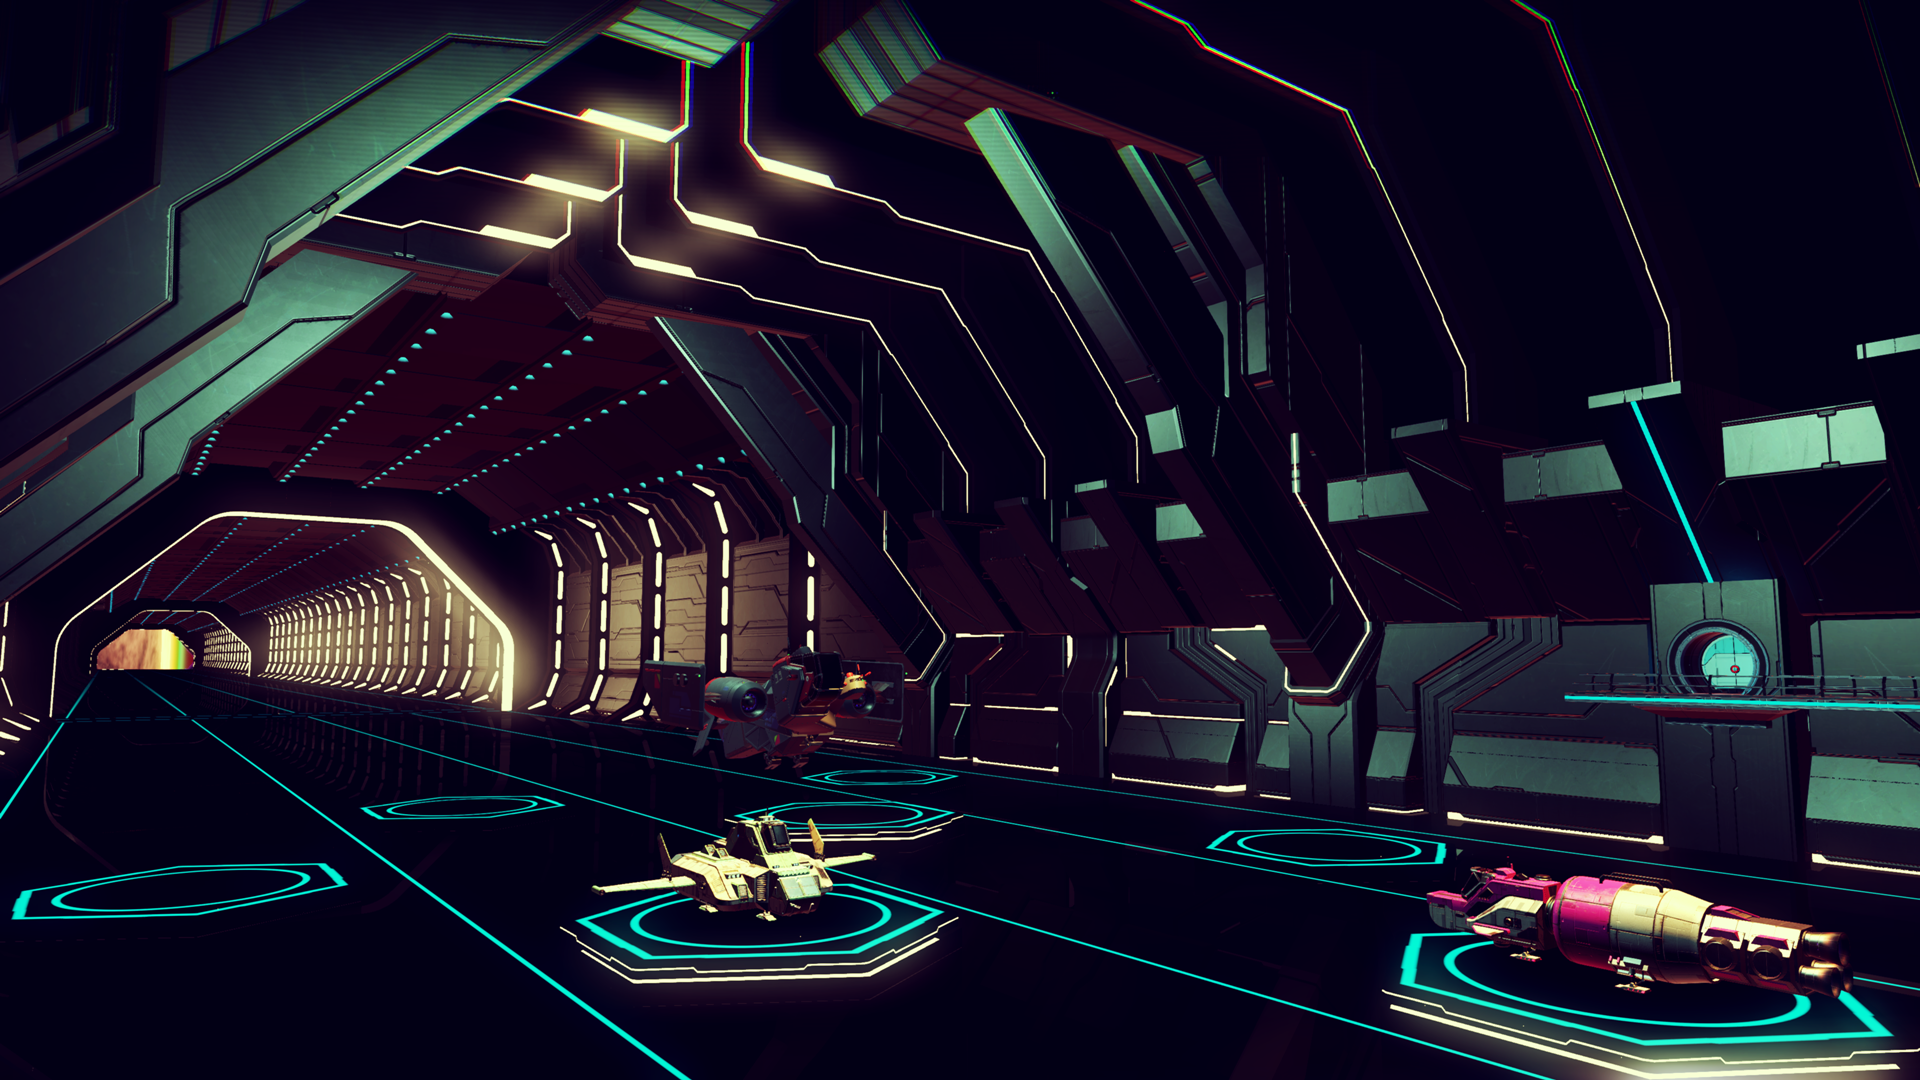 nms_2016_08_14_14_00_1wu1f.png